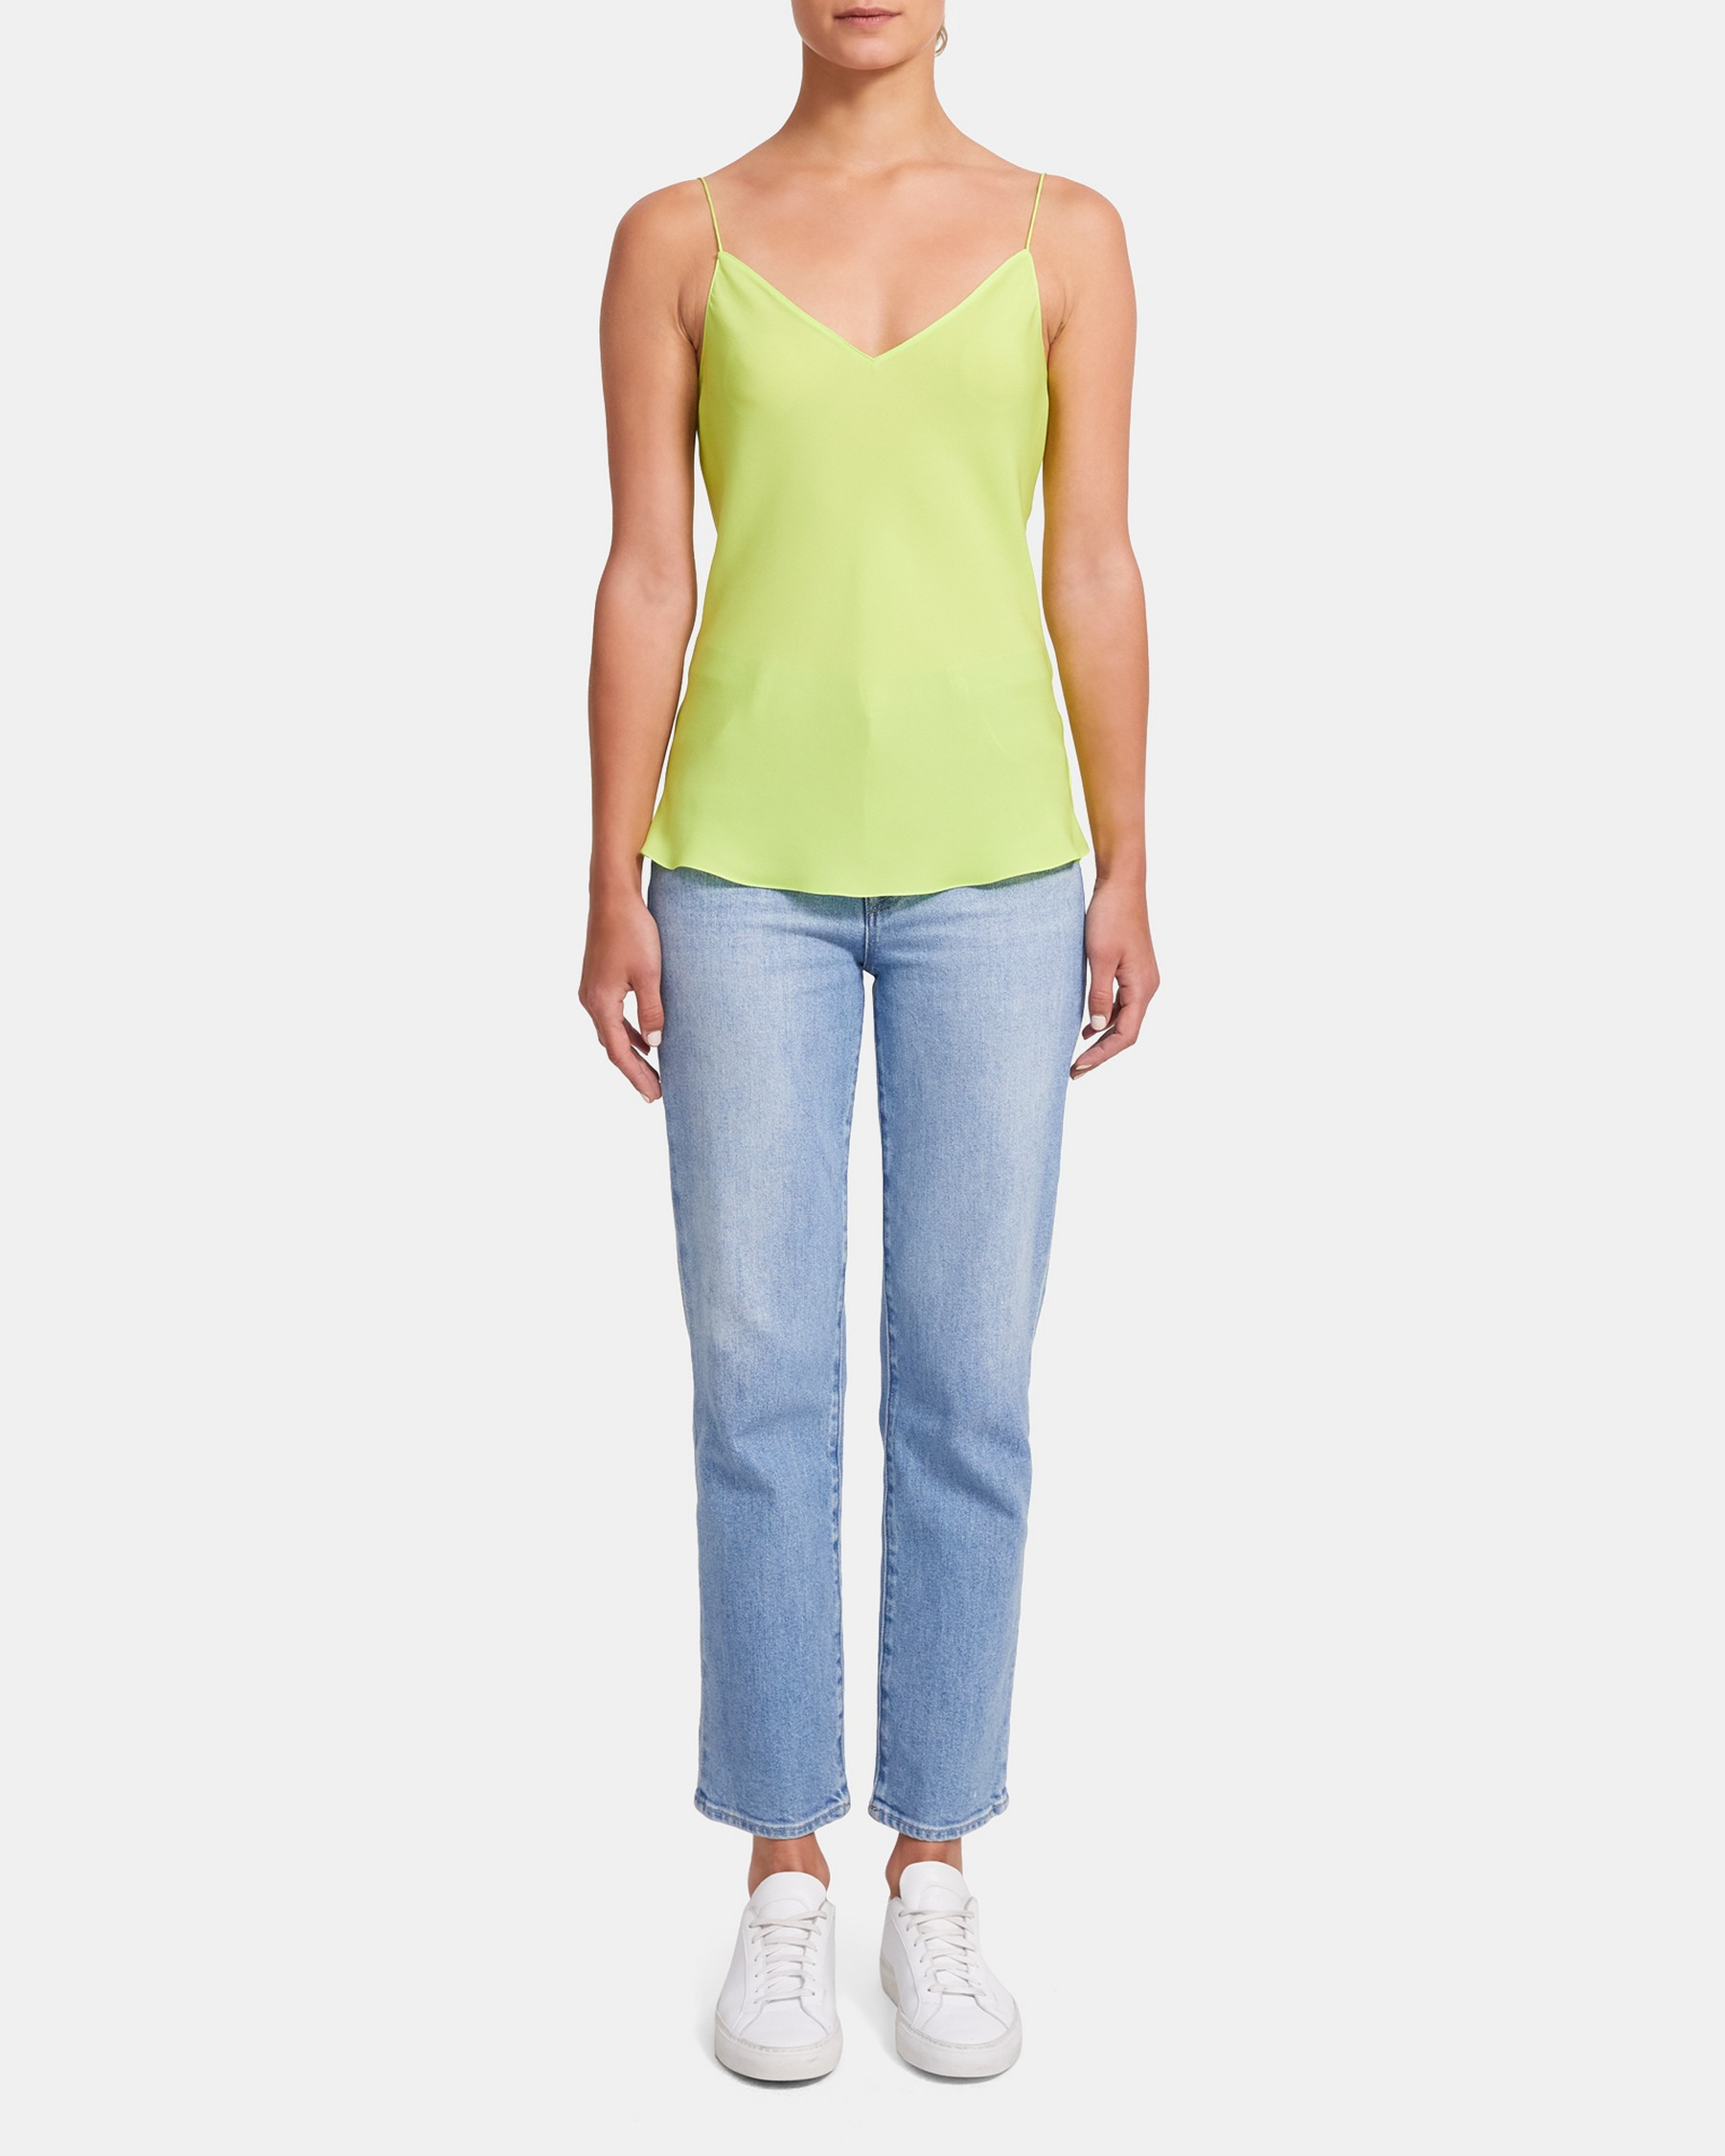 Neon Easy Slip Top in Silk   Theory